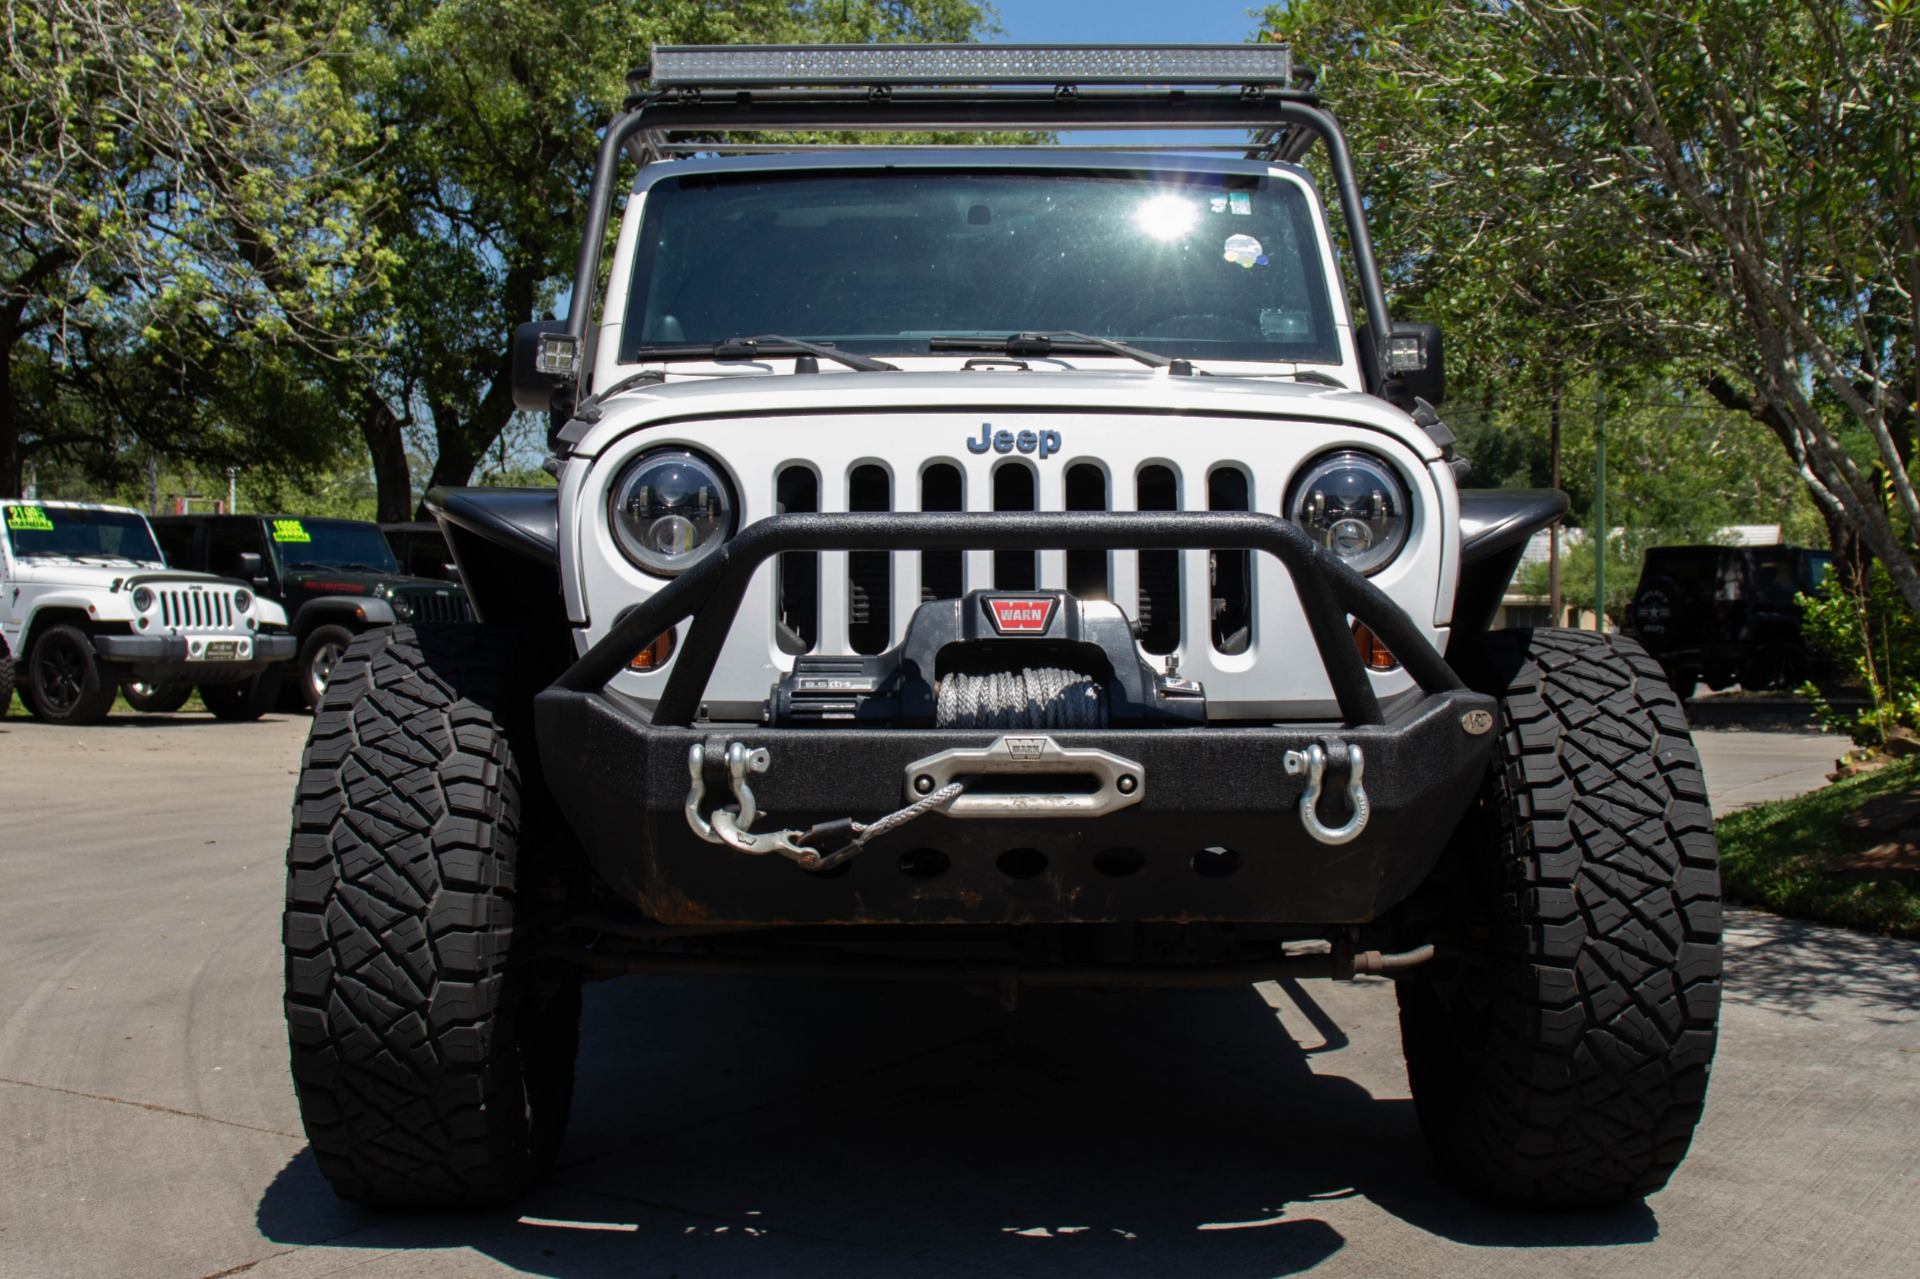 Used-2012-Jeep-Wrangler-Unlimited-Rubicon